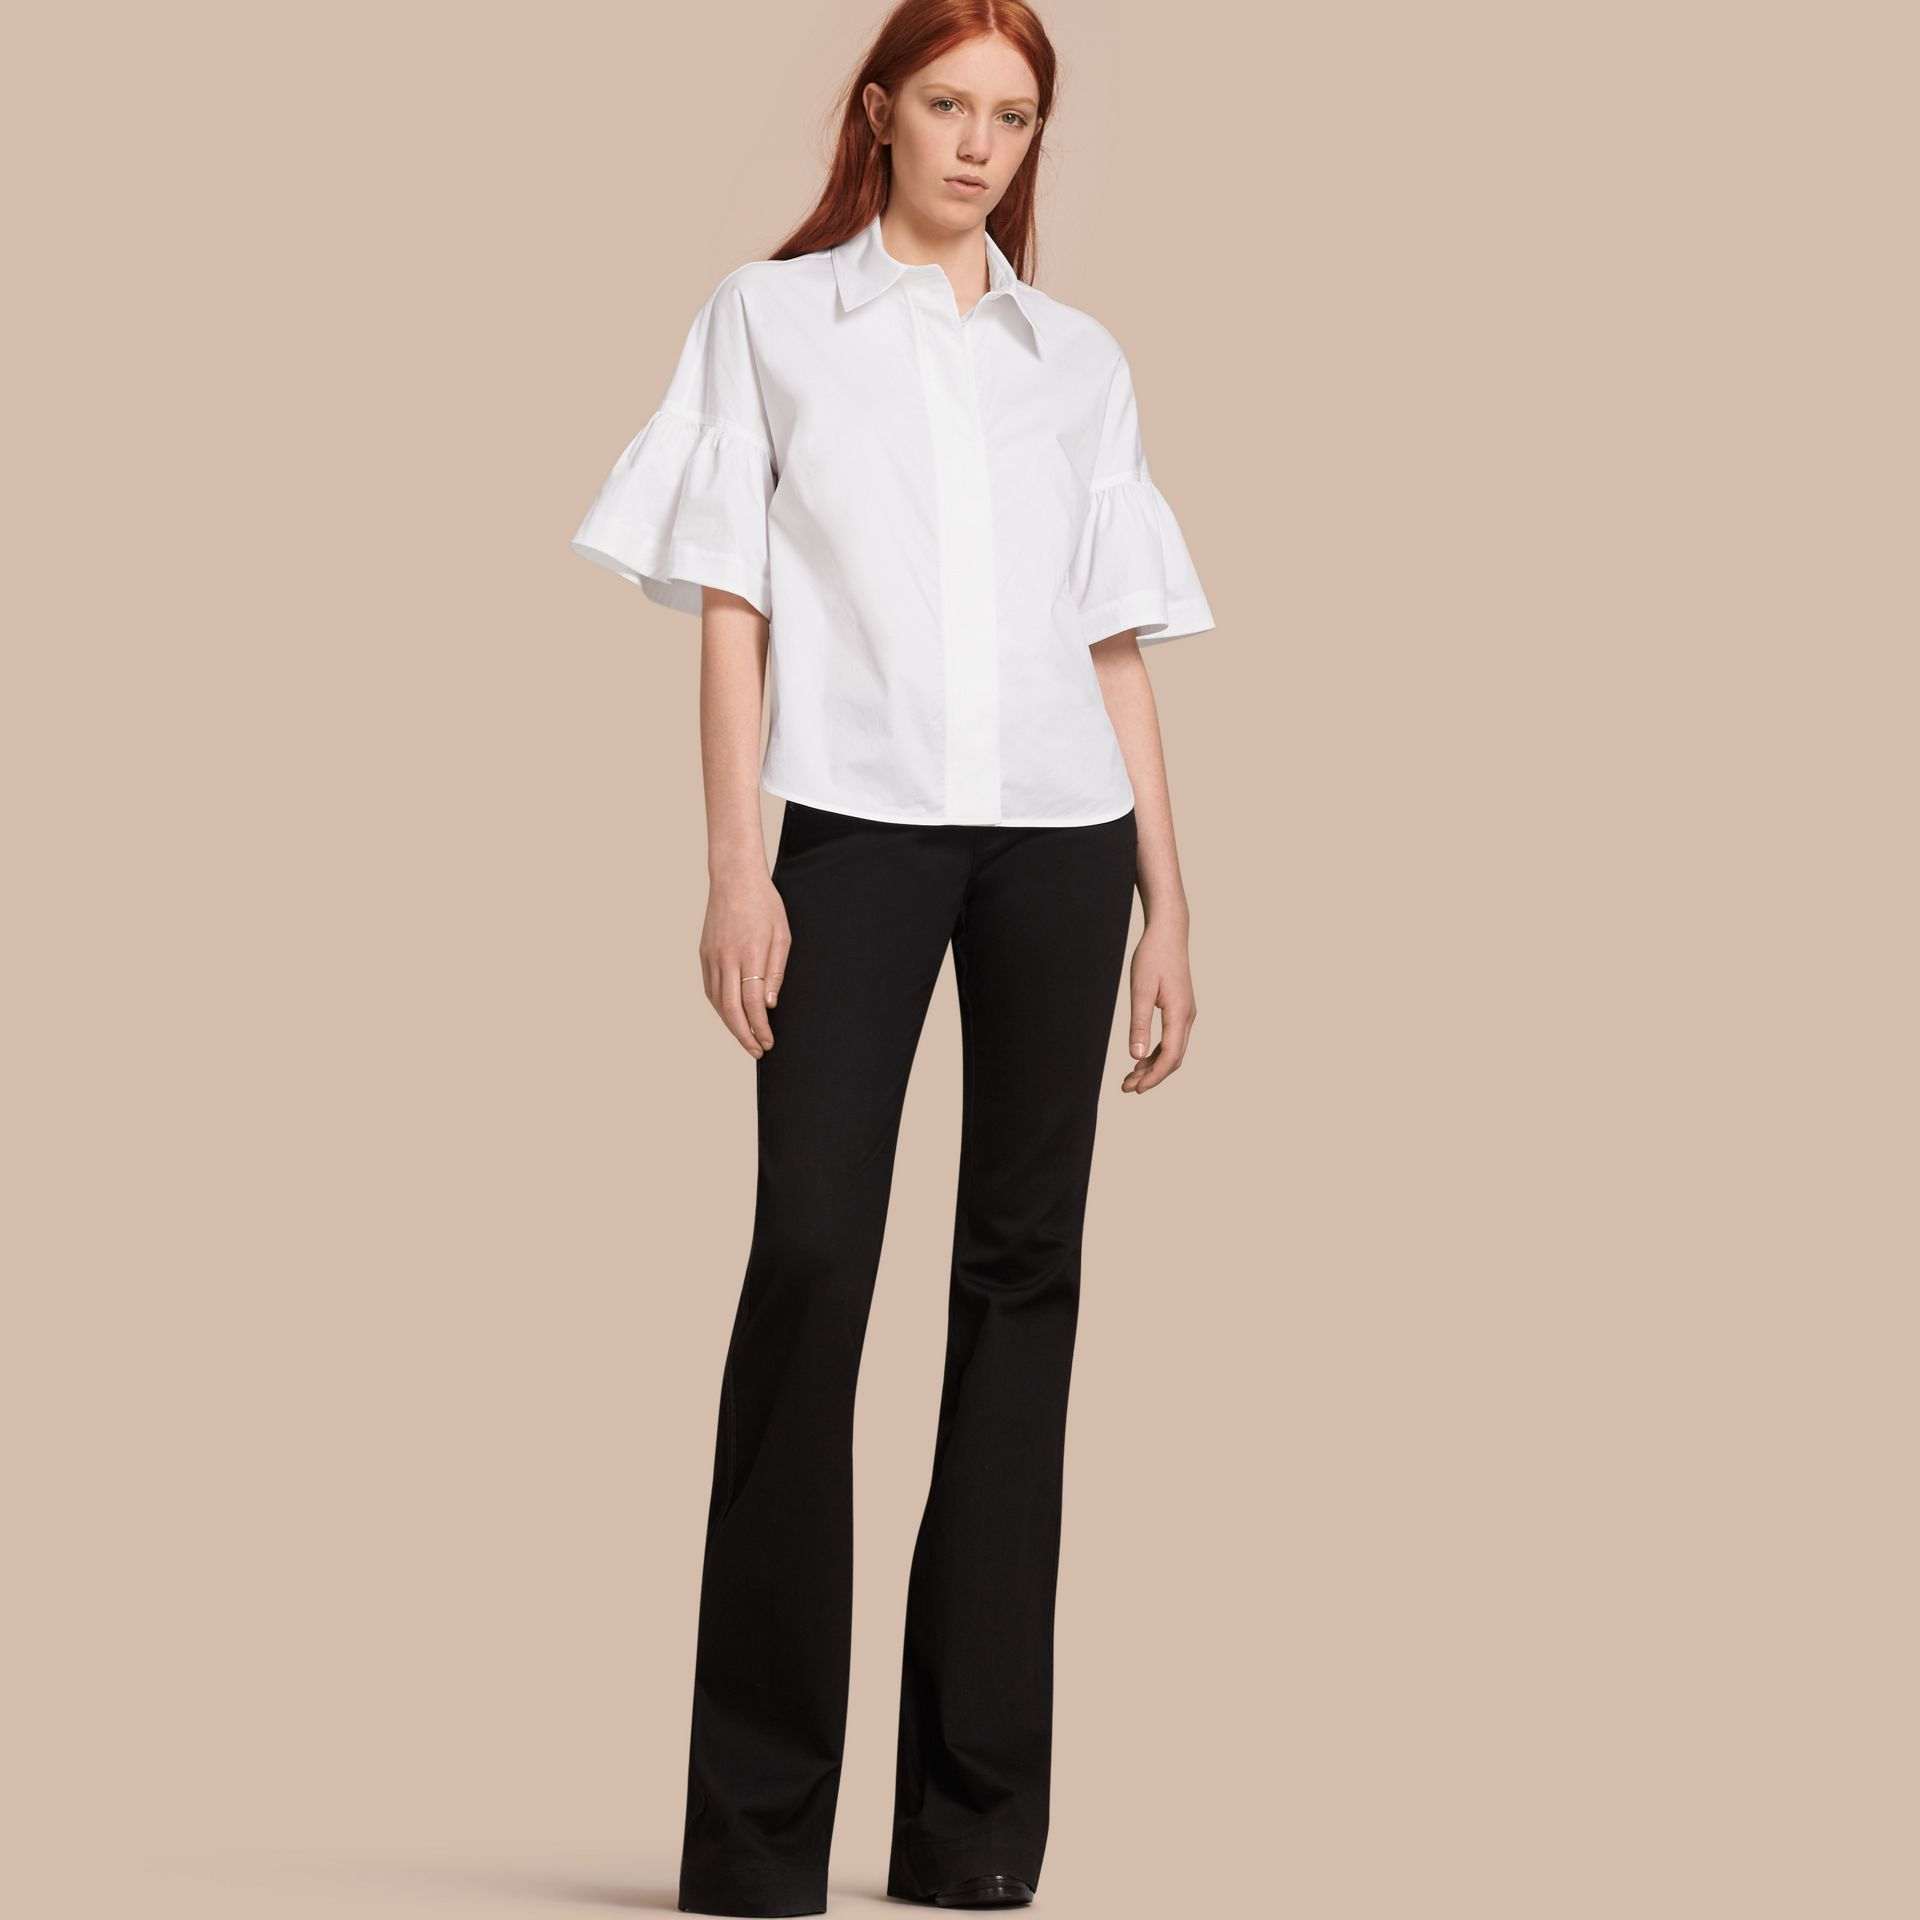 White Stretch Cotton Shirt with Ruched Sleeves White - gallery image 1